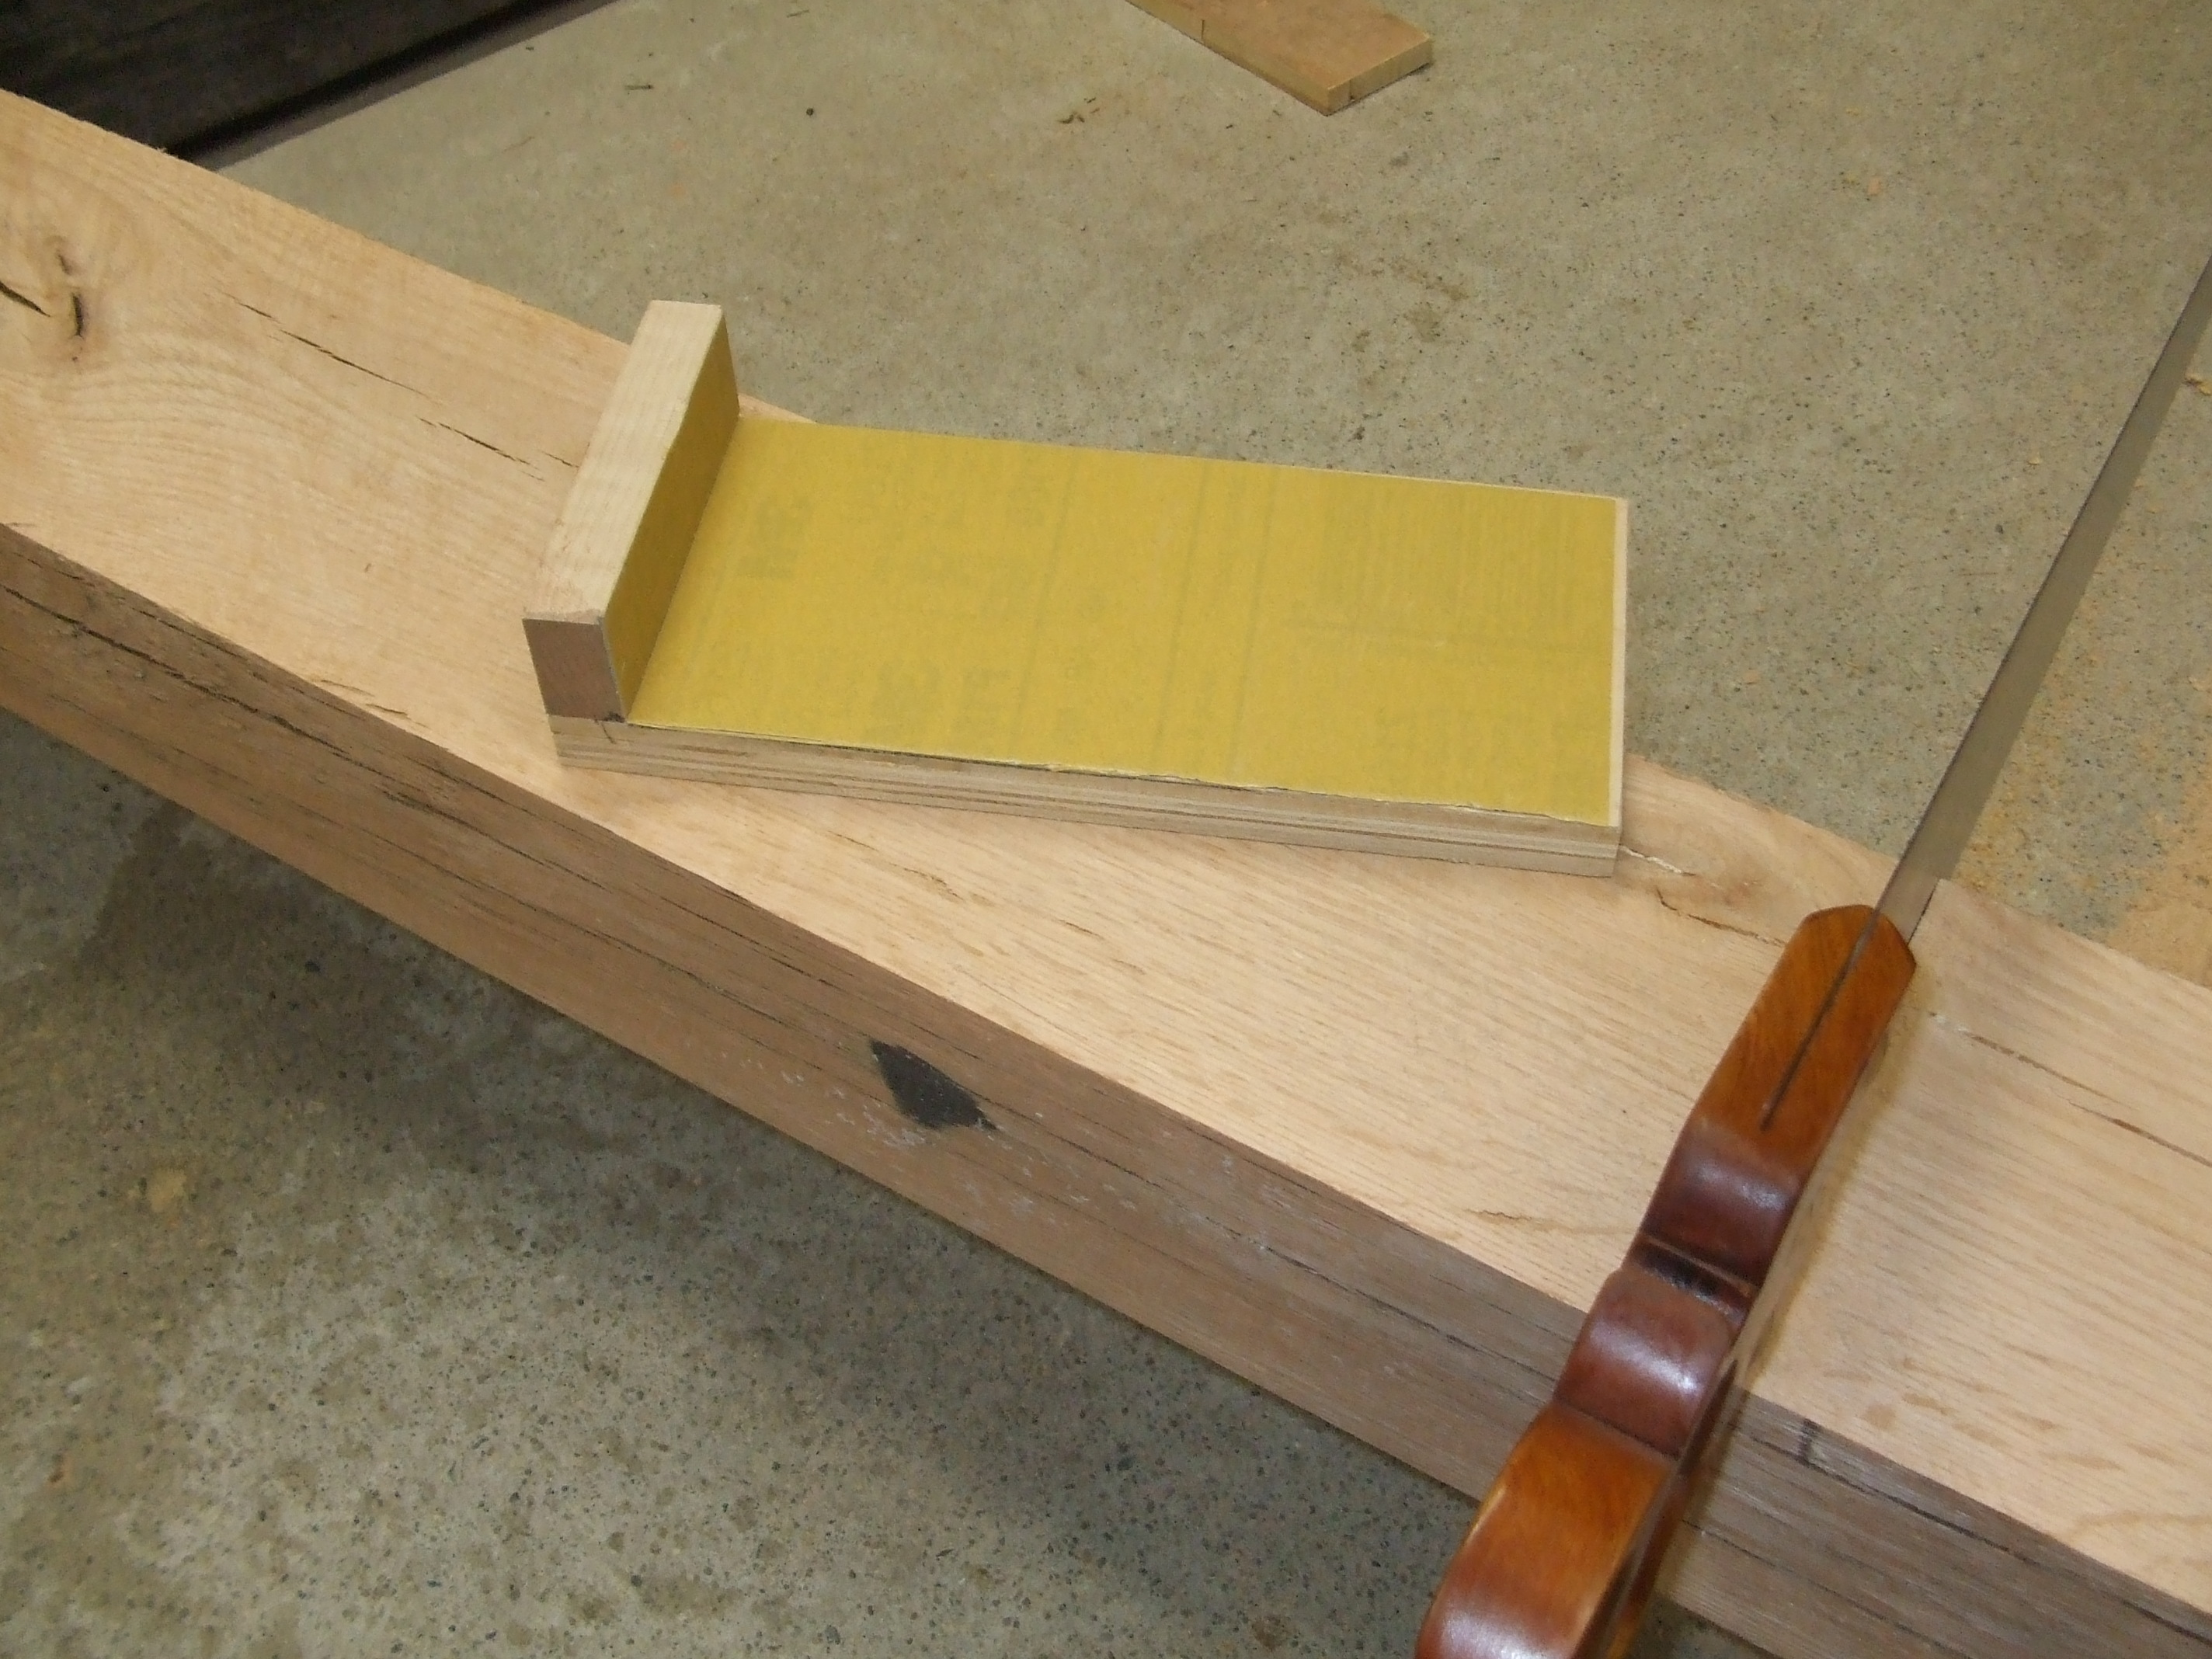 Woodshop Project Ideas Woodworking Bench Top Thickness Here